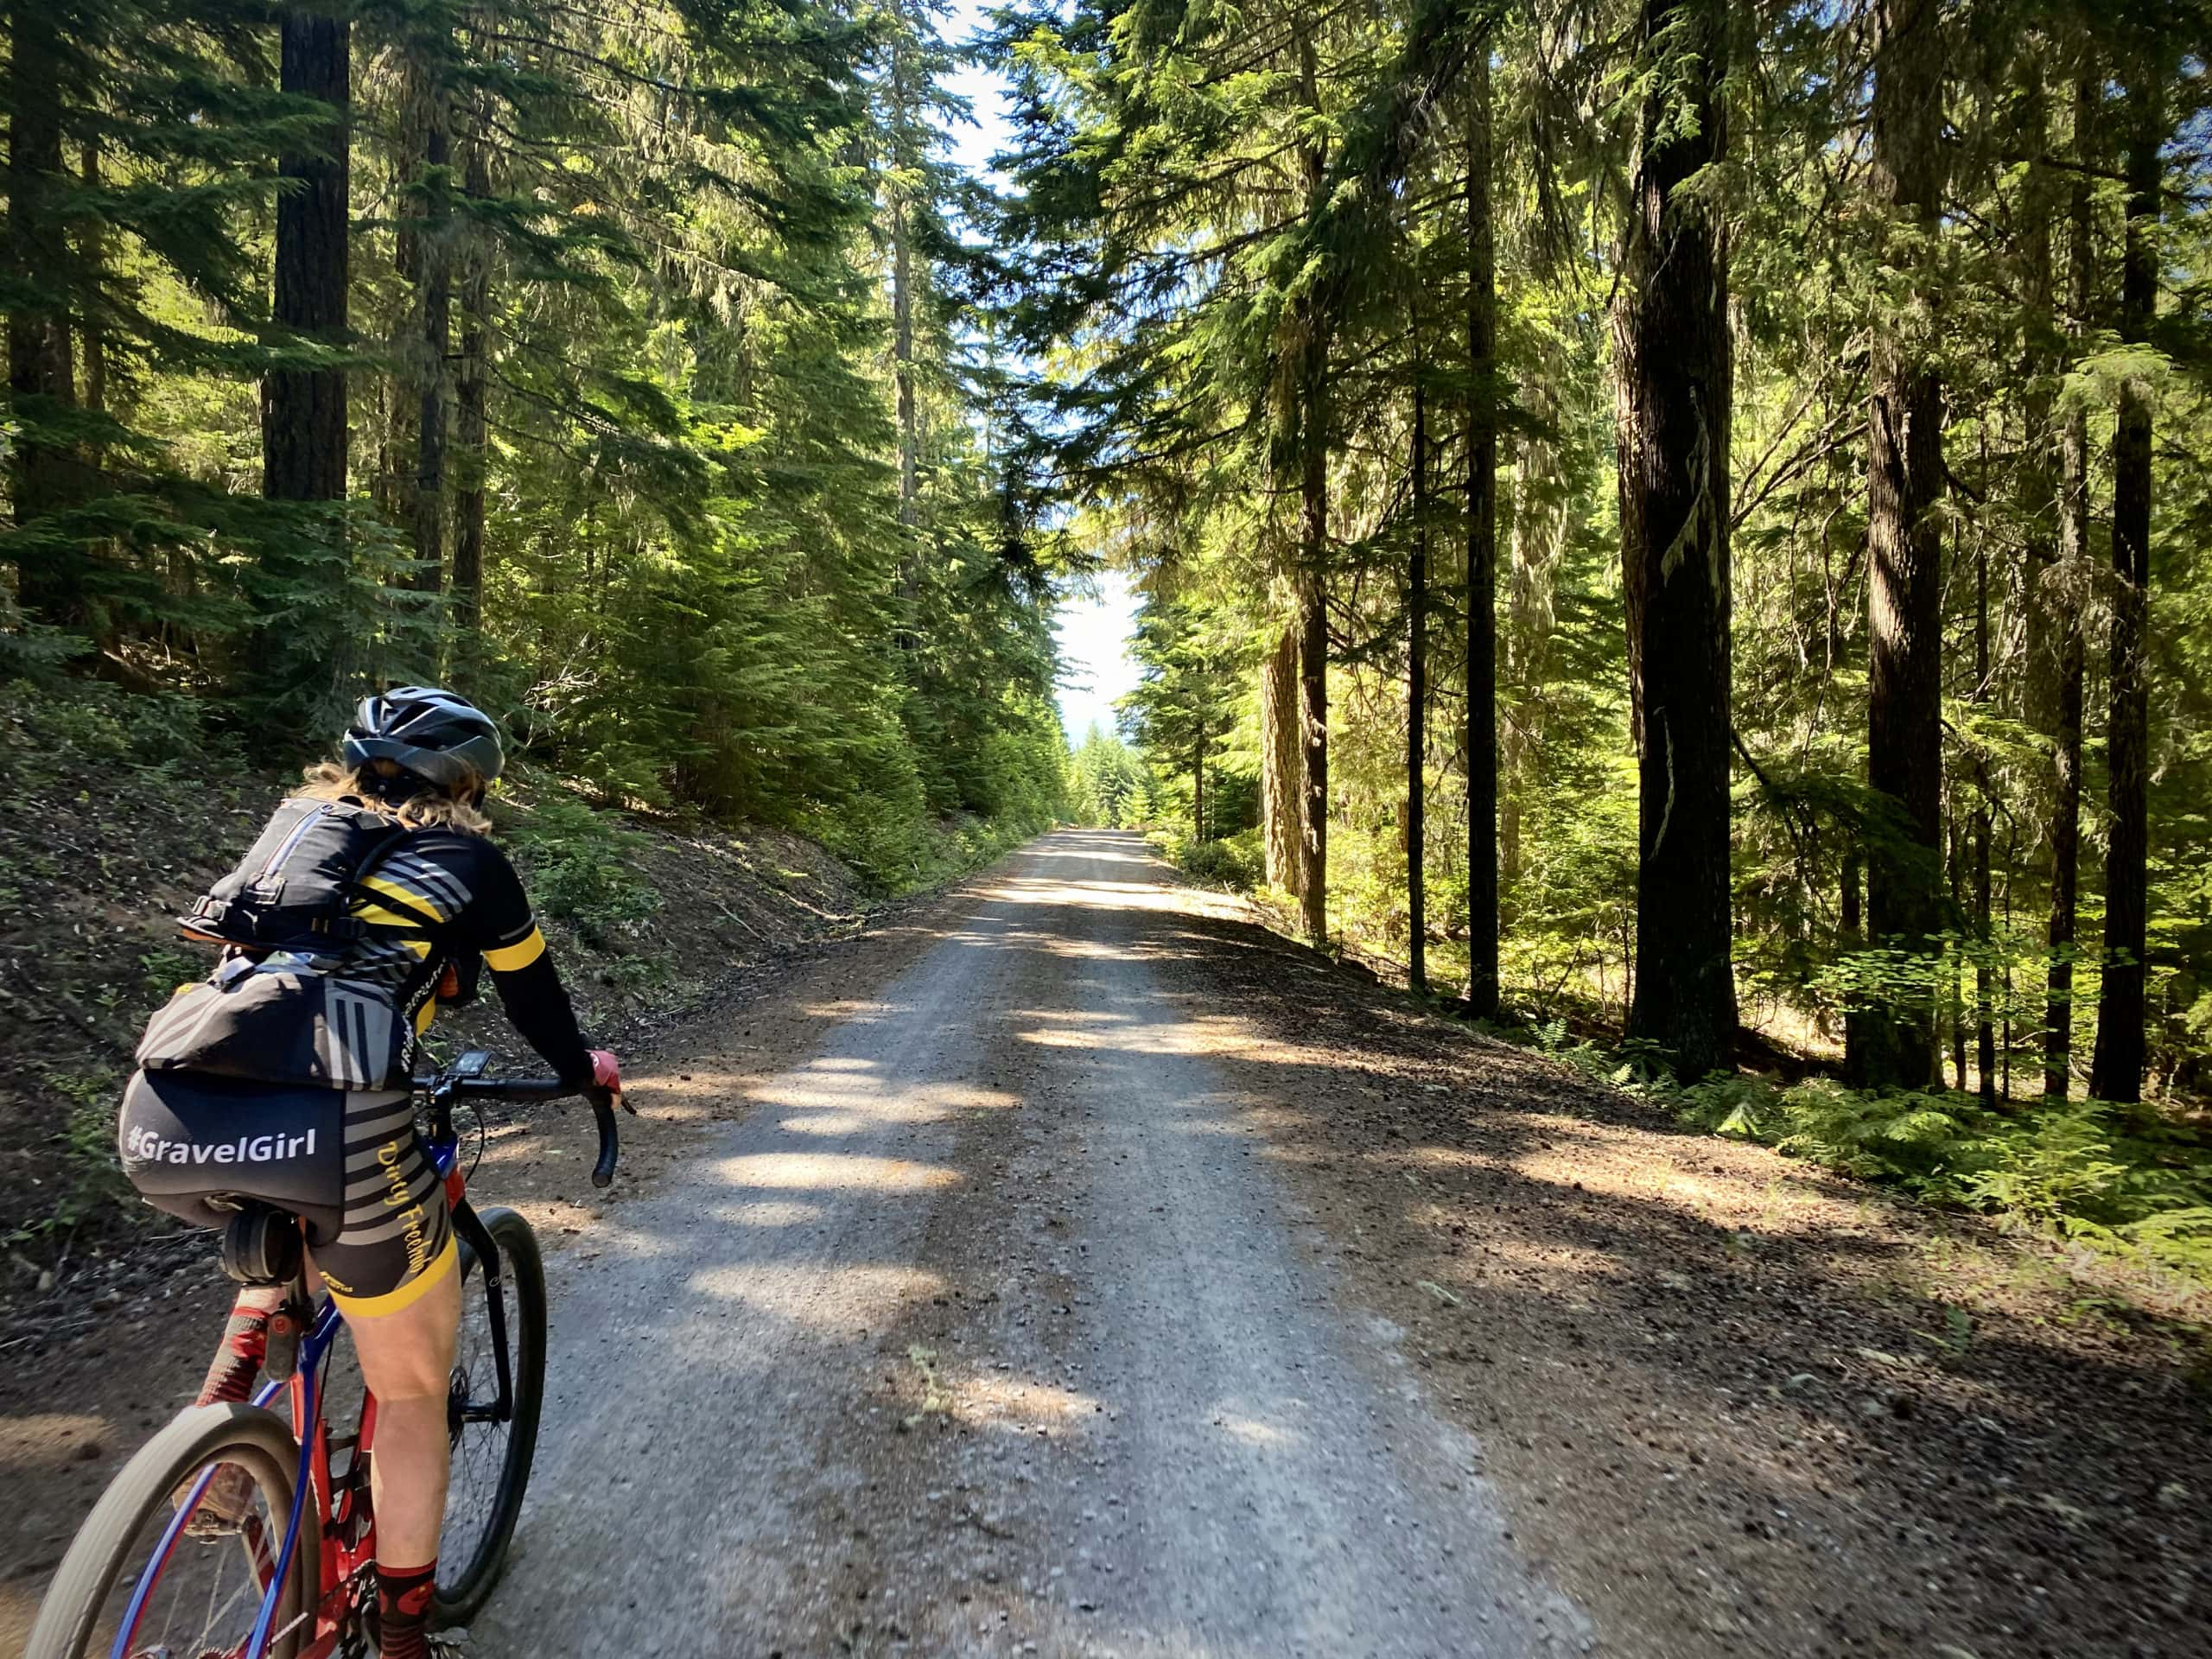 Cyclist on hard packed, fast gravel road in the Mt. Hood National forest.